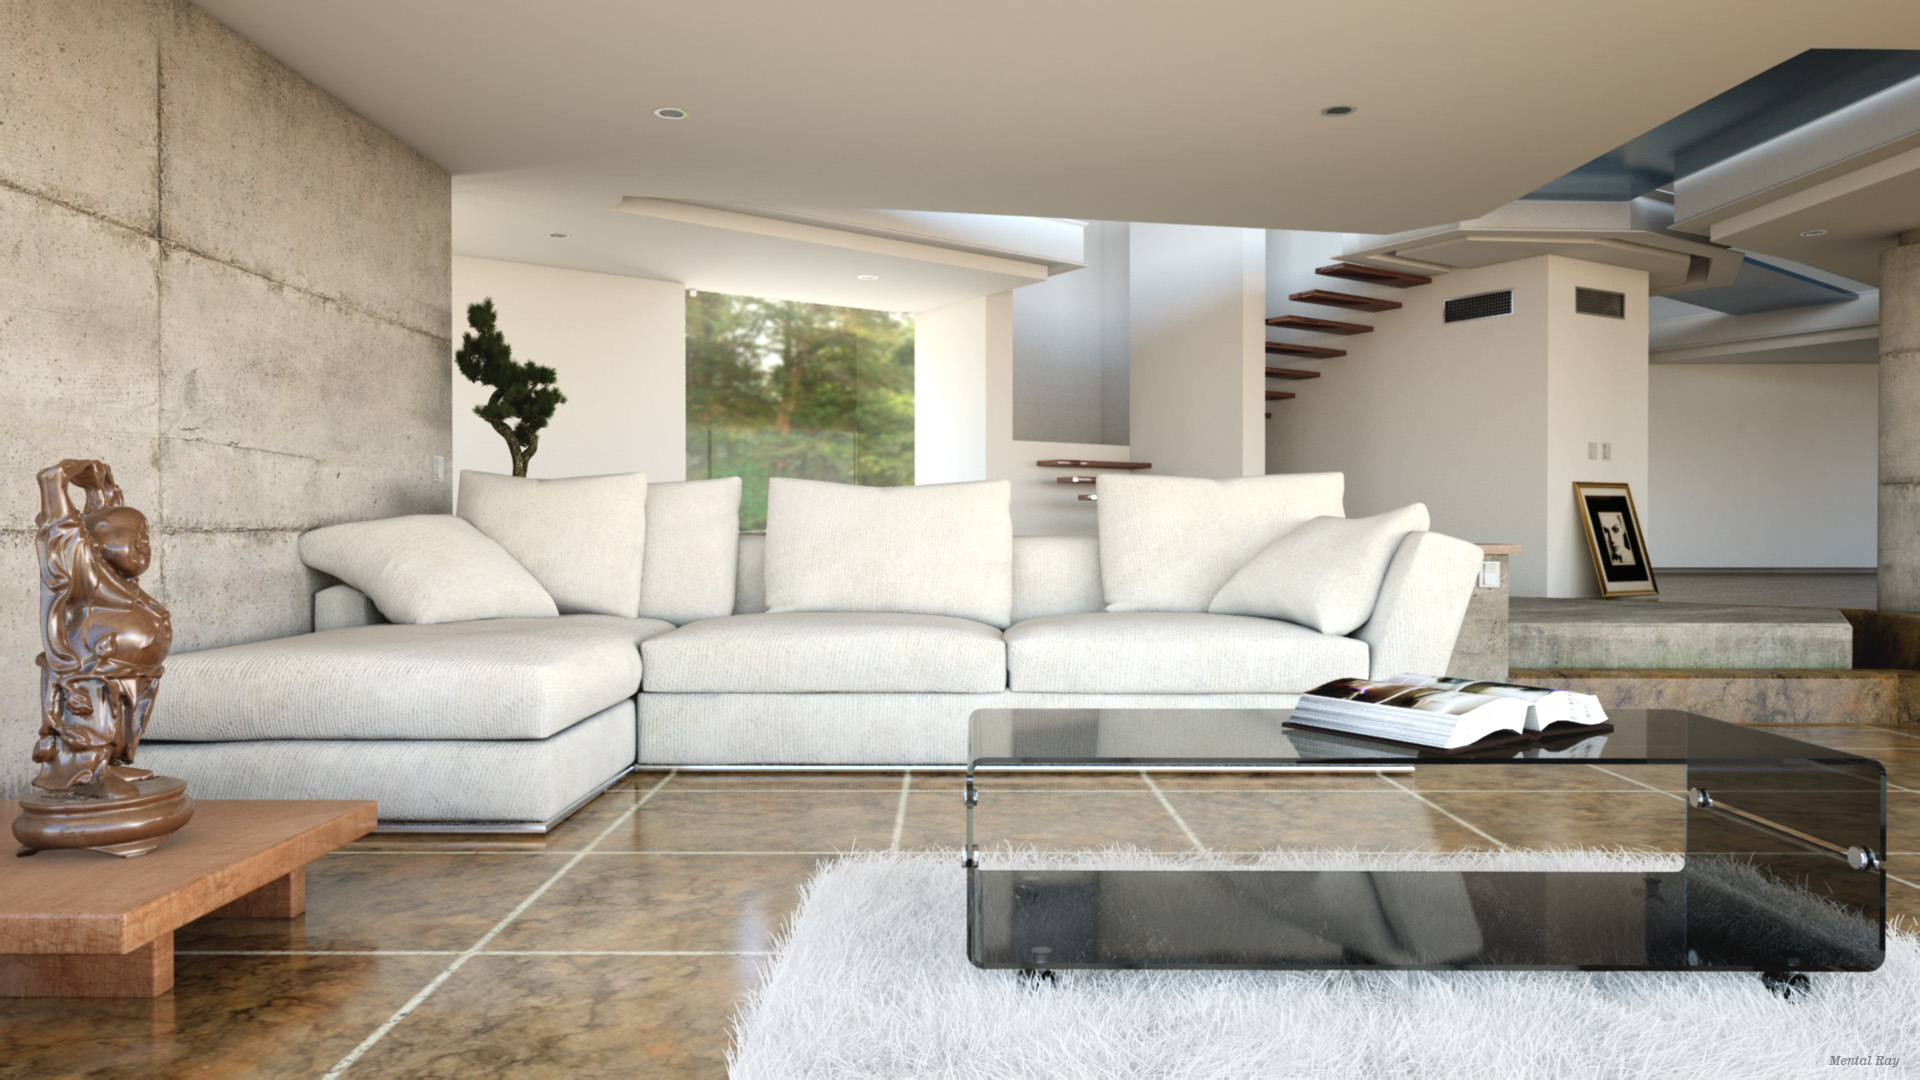 Modern Realistic Interior Living Room Livingroom Vray Mental Ray Octane With Furniture Collection And Carpet